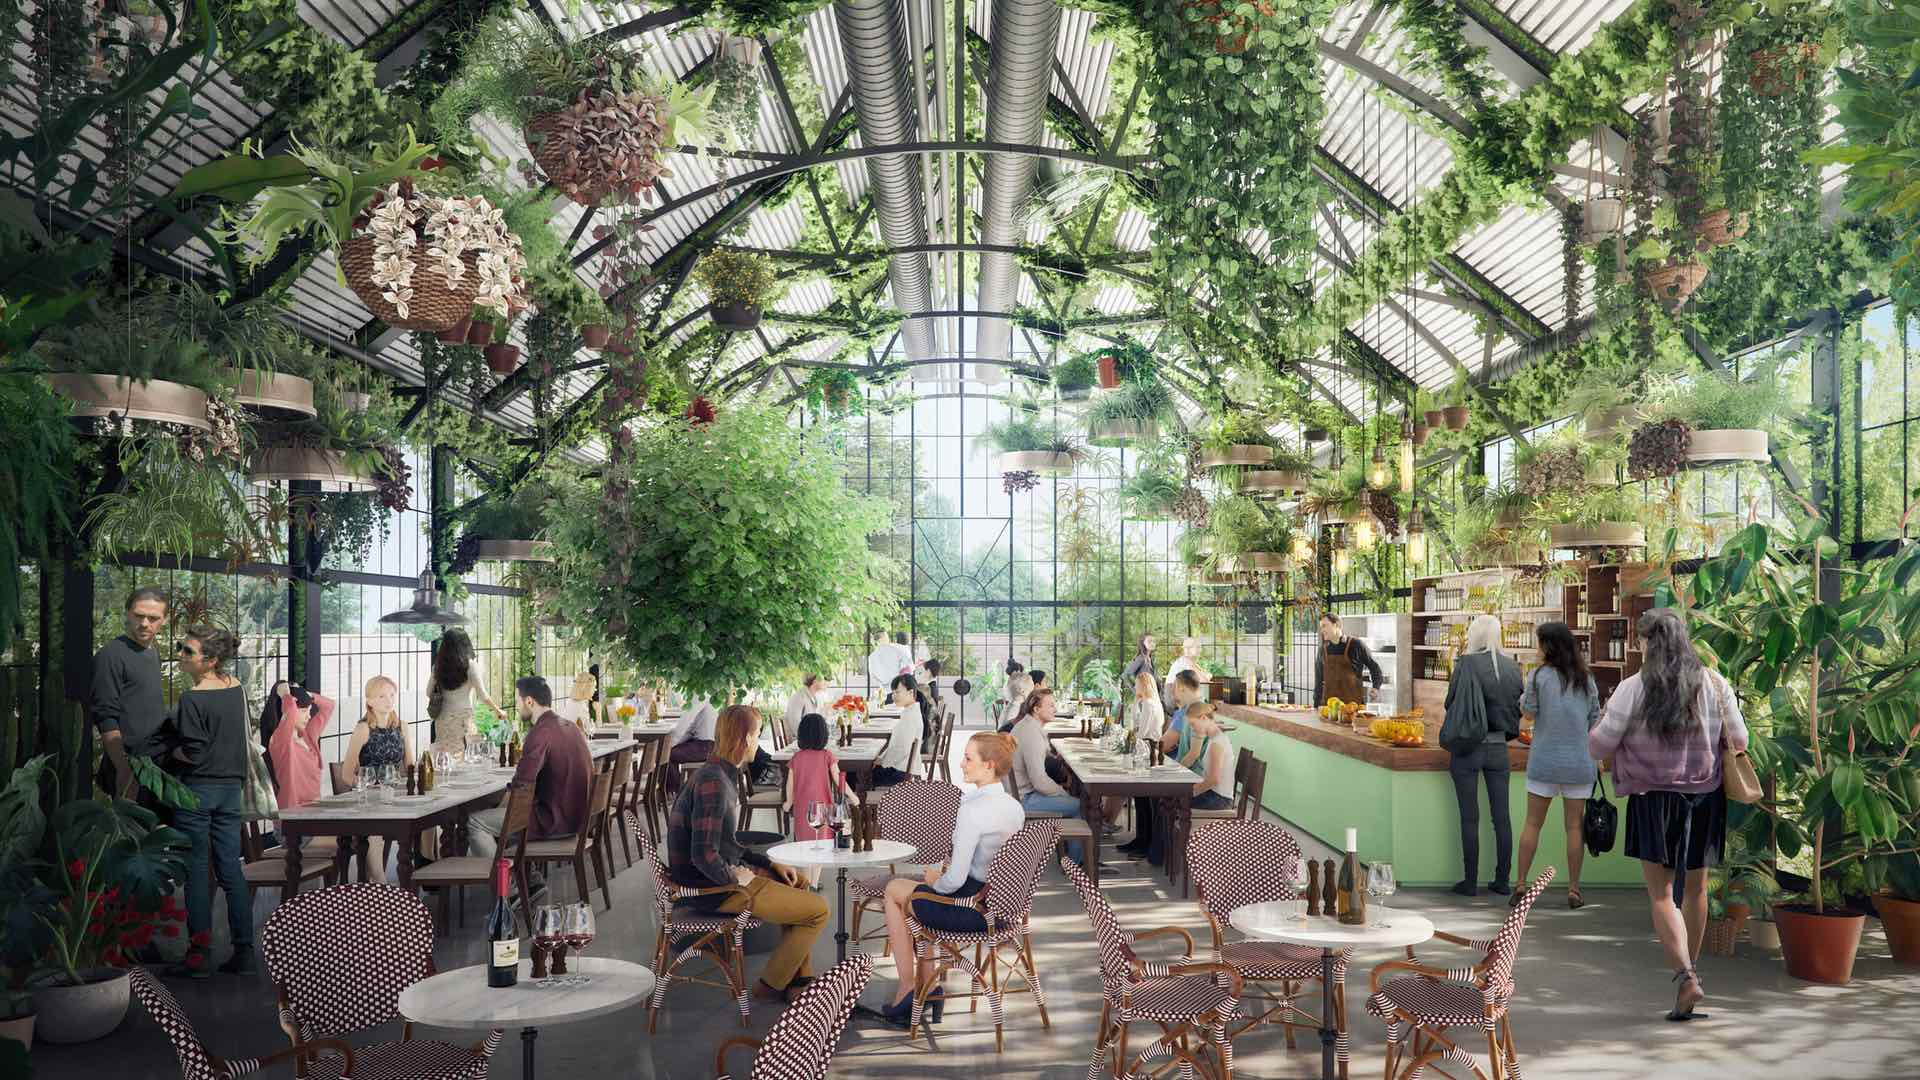 Melbourne Might Soon Be Home to the World's Most Sustainable Shopping Centre